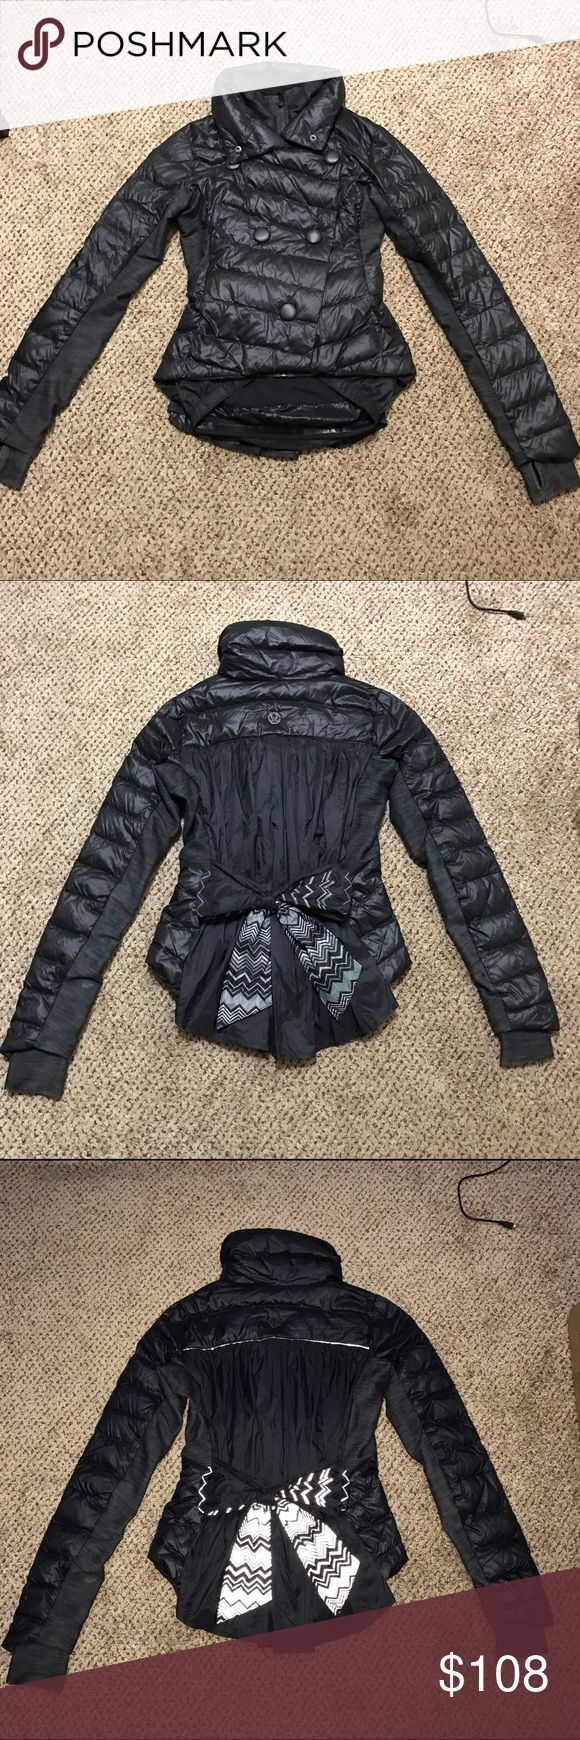 HOLIDAY SALE! Lululemon down jacket RARE! Super cute down jacket! Very lightweight and has reflective details. In great condition sz 6 but can fit a 4 too I'm a sz 4 btw:) PRICE FRIM! lululemon athletica Jackets & Coats